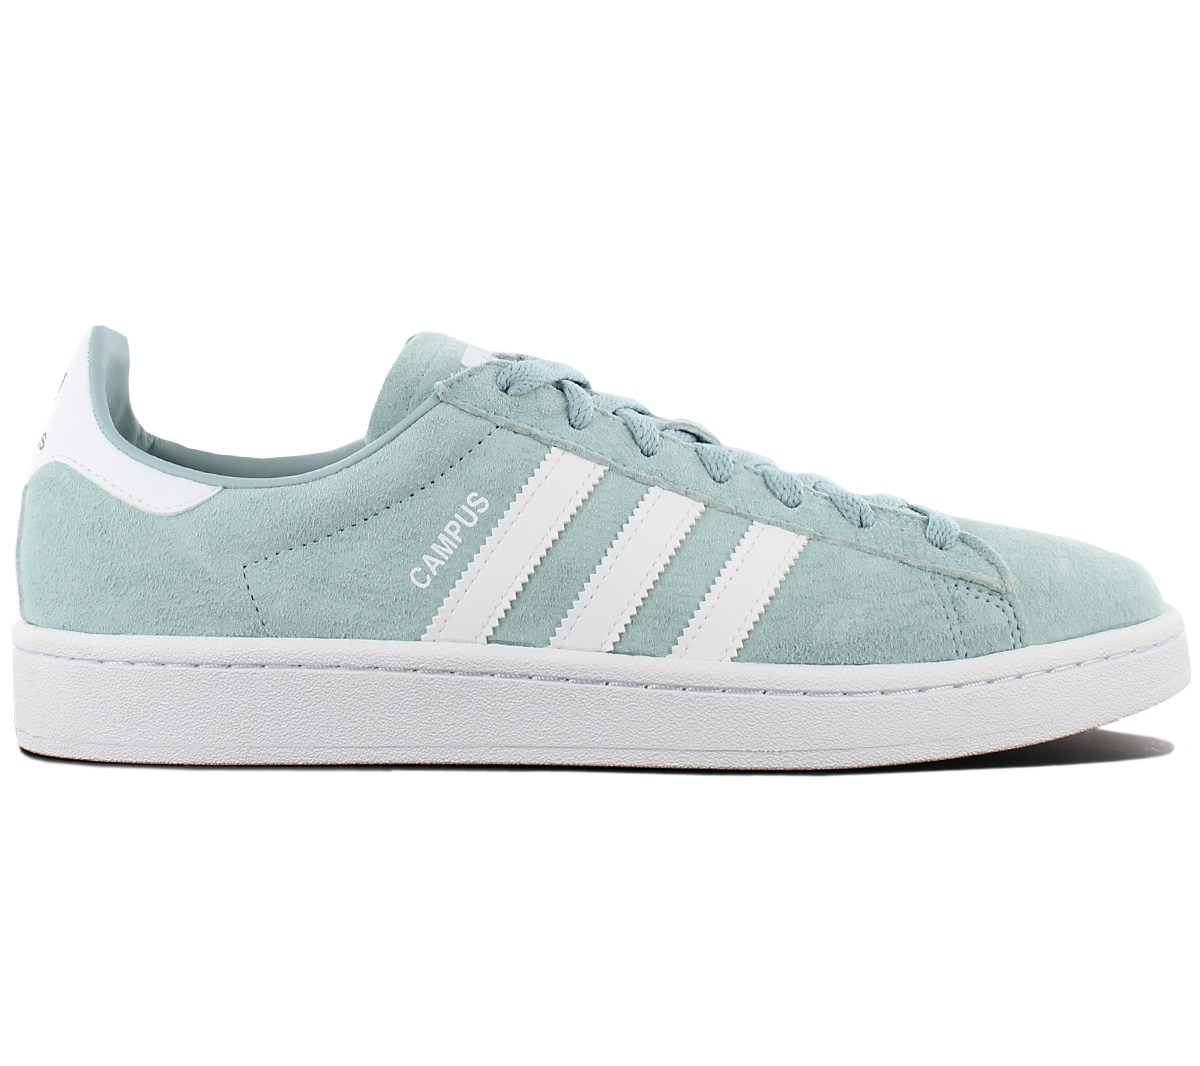 64c9d1f2d12 NEW adidas Campus Leather BZ0082 Men  s Shoes Trainers Sneakers SALE ...